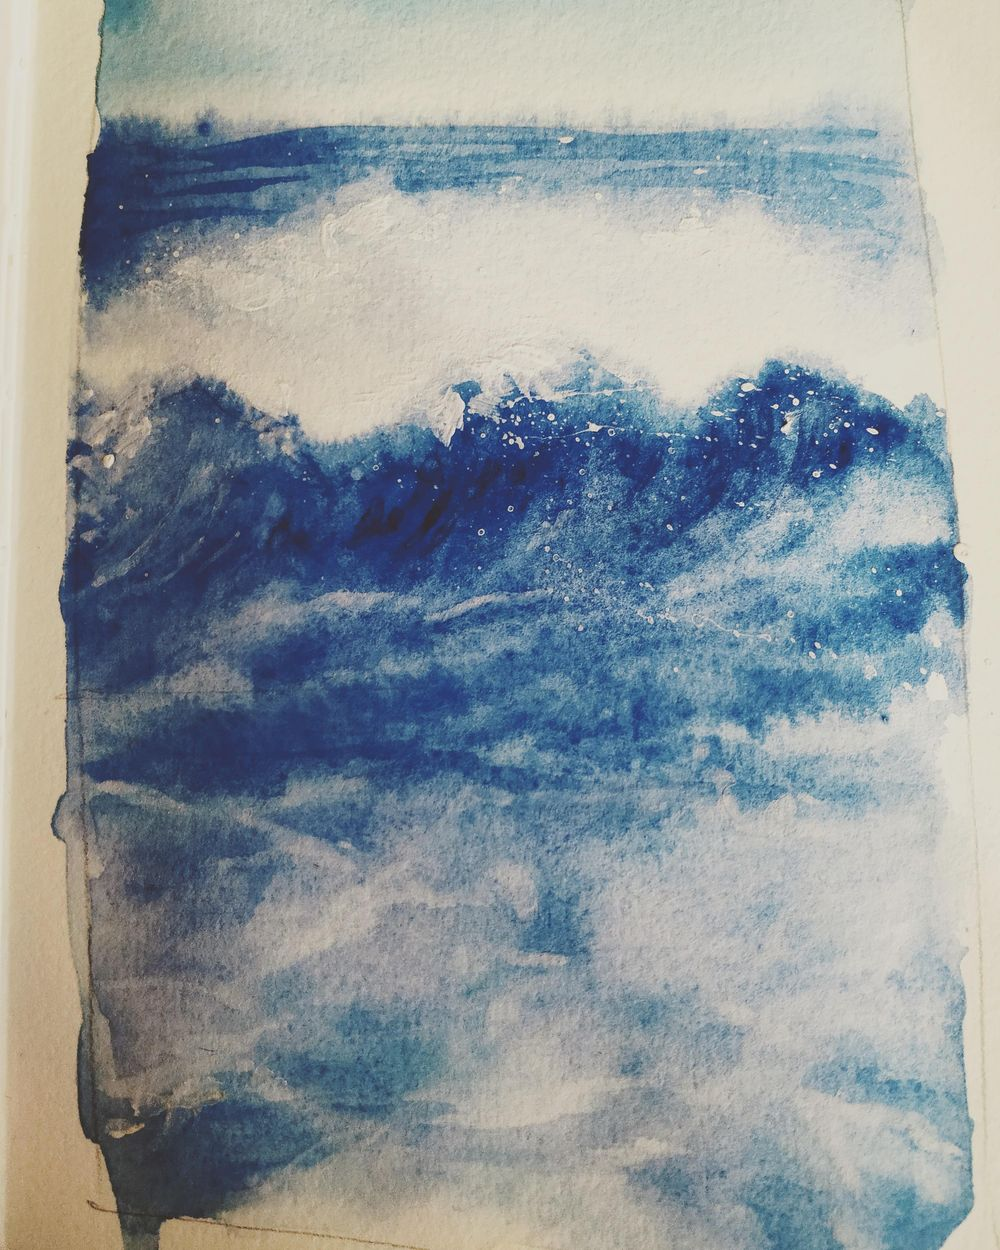 Ocean wave study - image 1 - student project